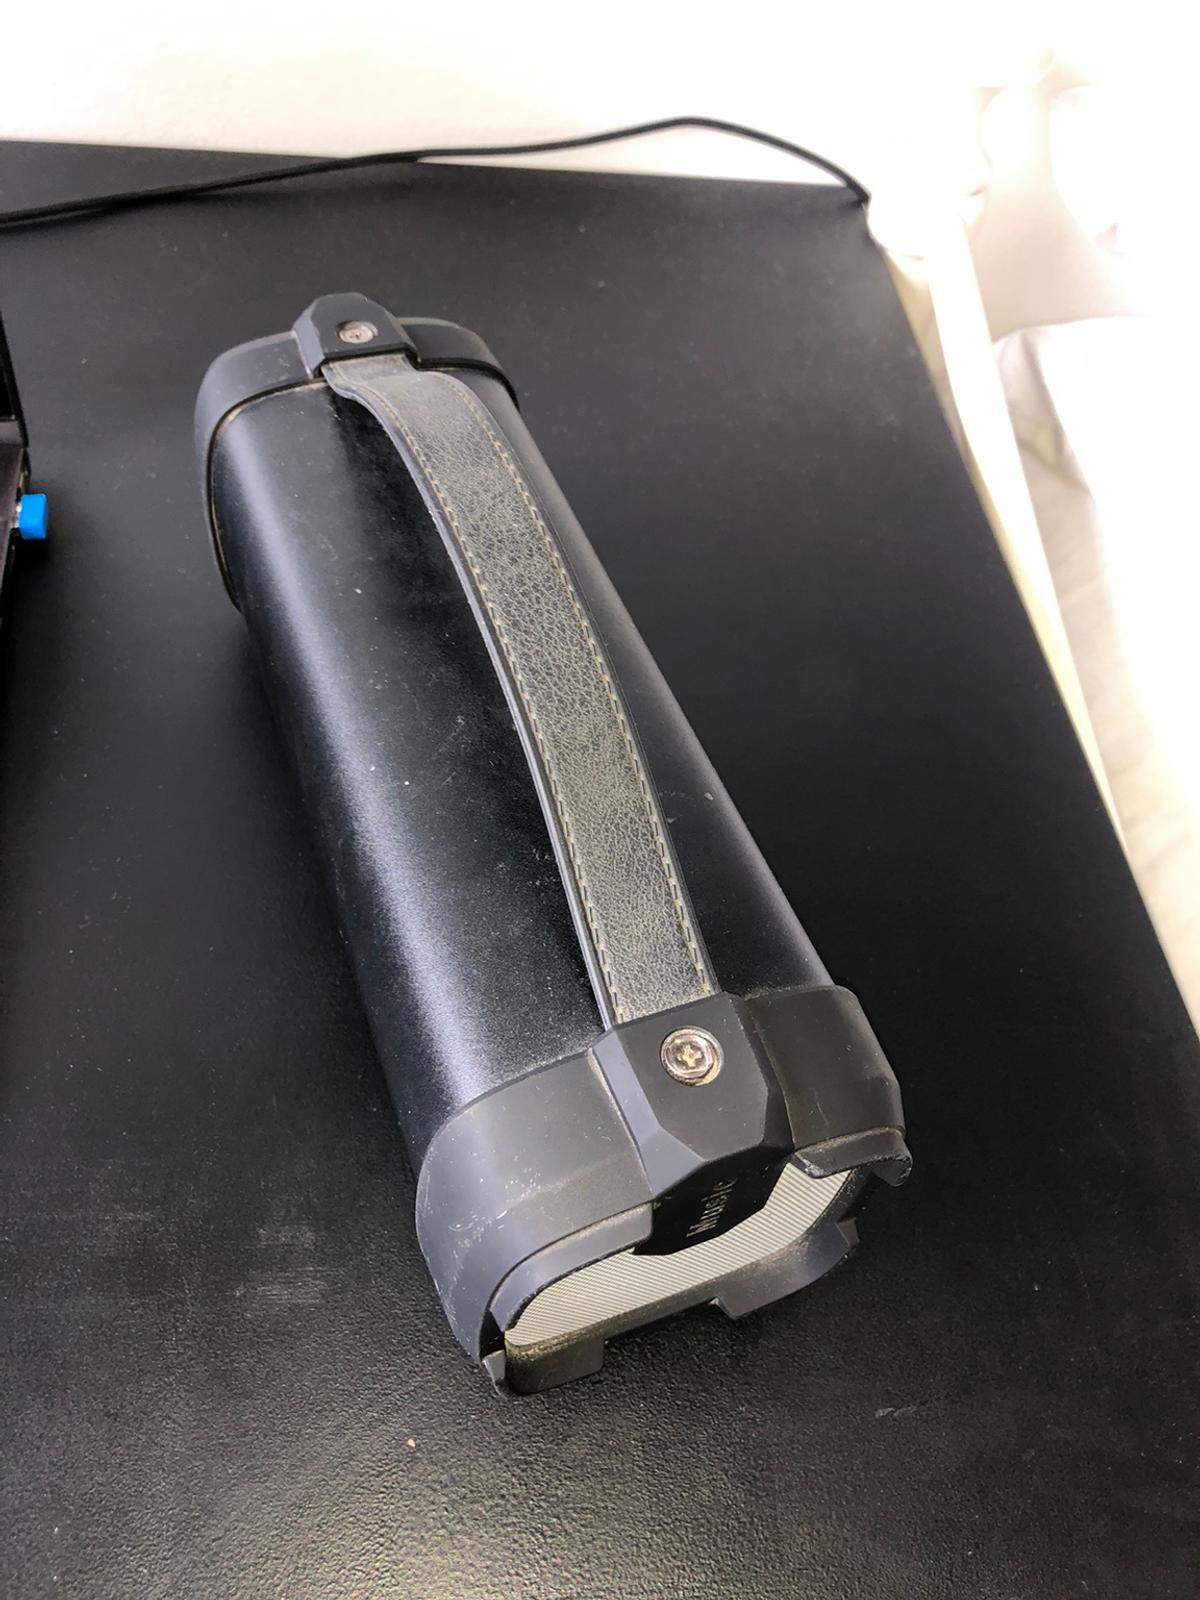 Bluetooth speaker - very loud and good quality